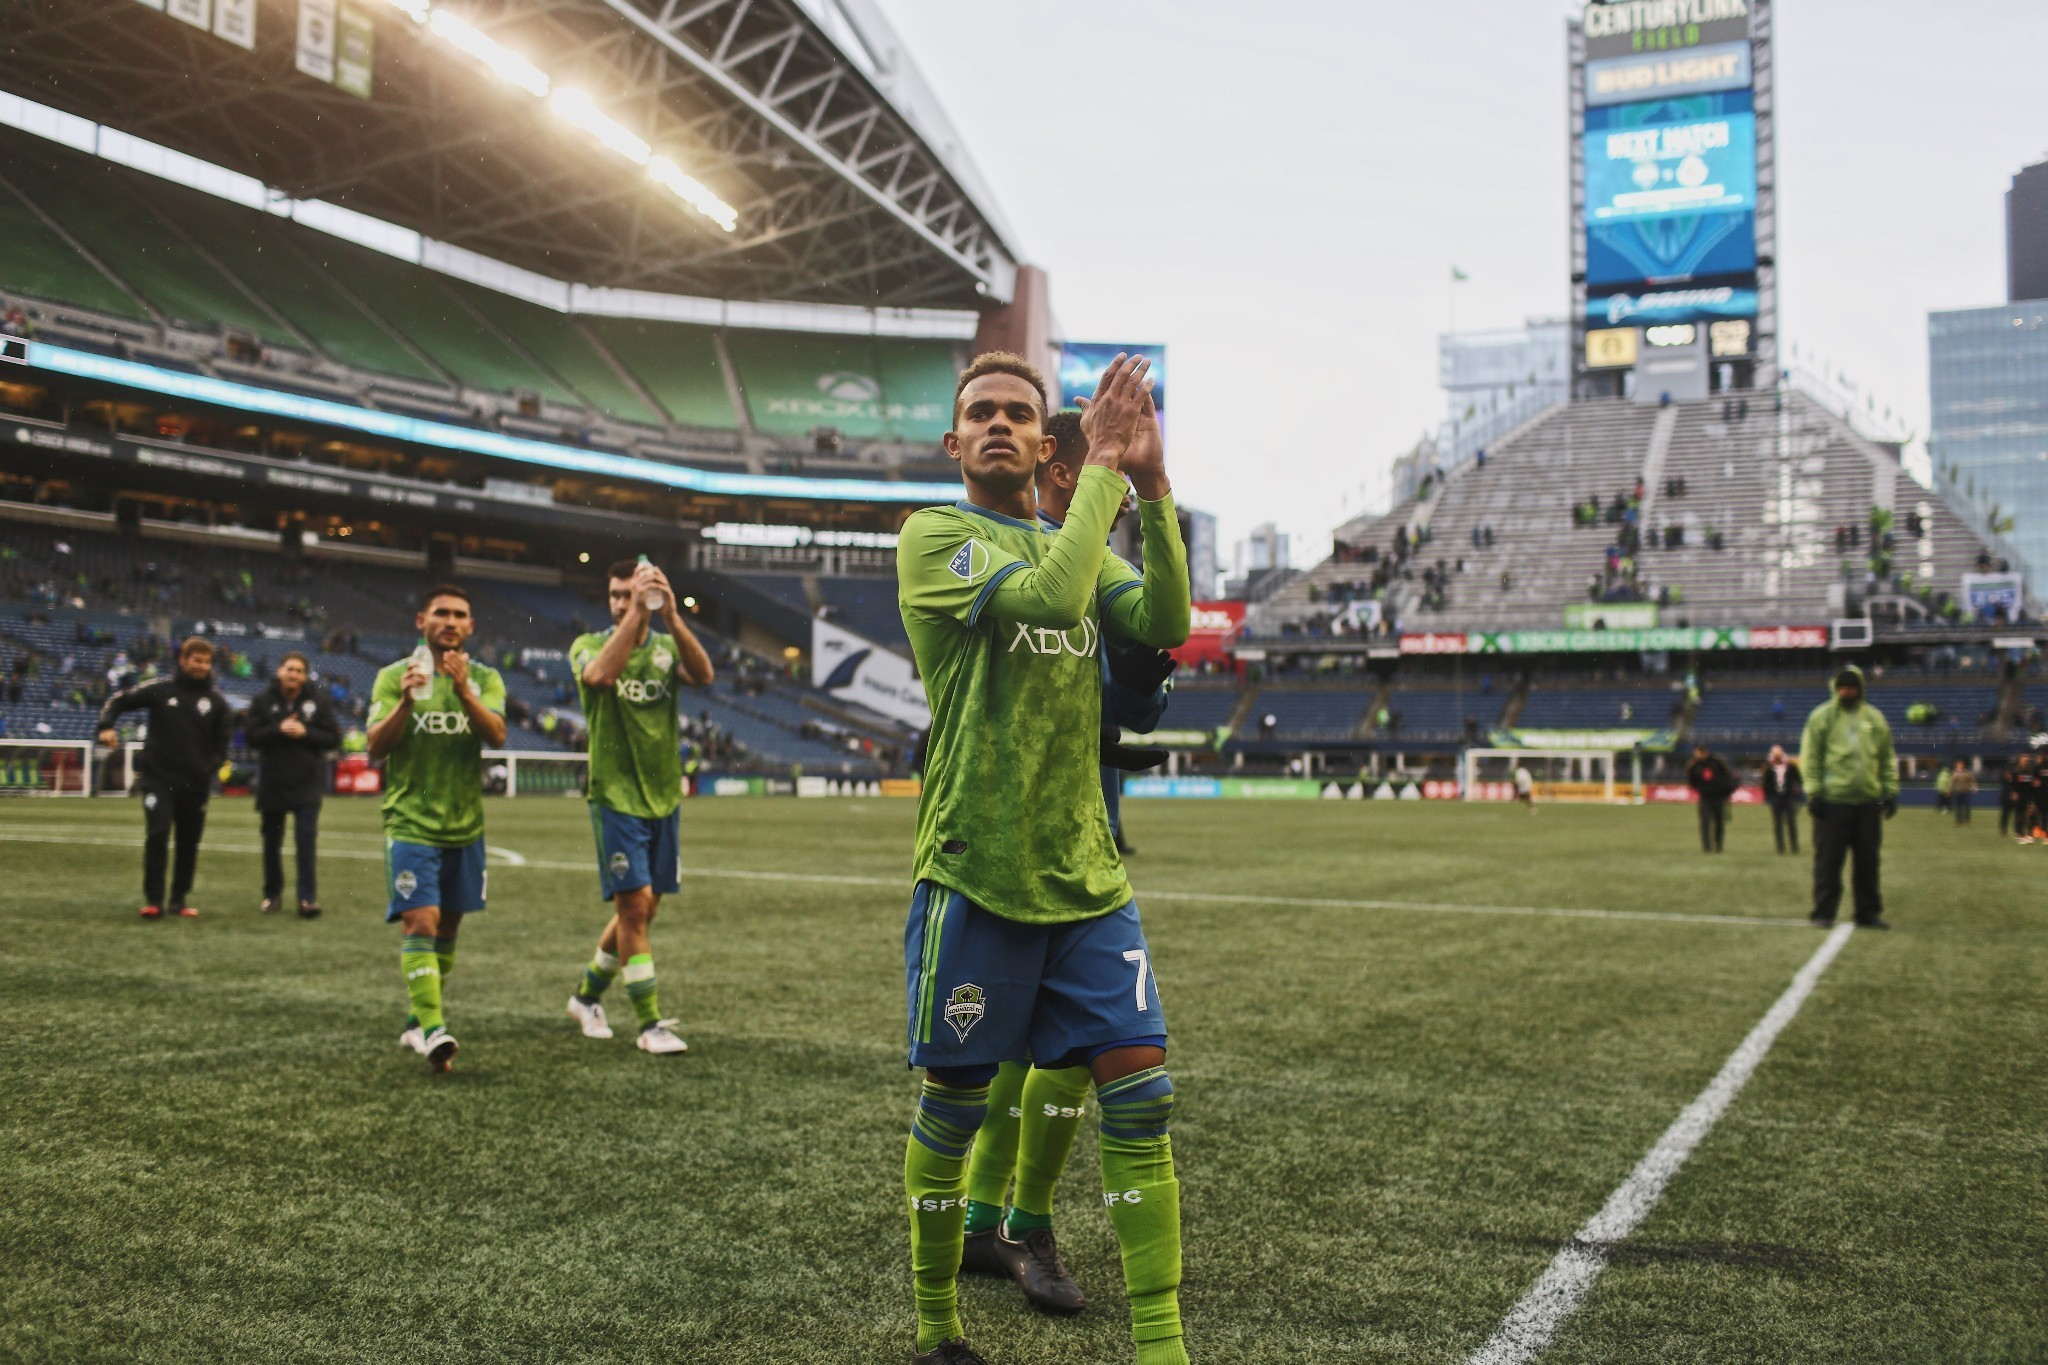 Handwalla Bwana's journey from Kakuma refugee camp to the Seattle Sounders